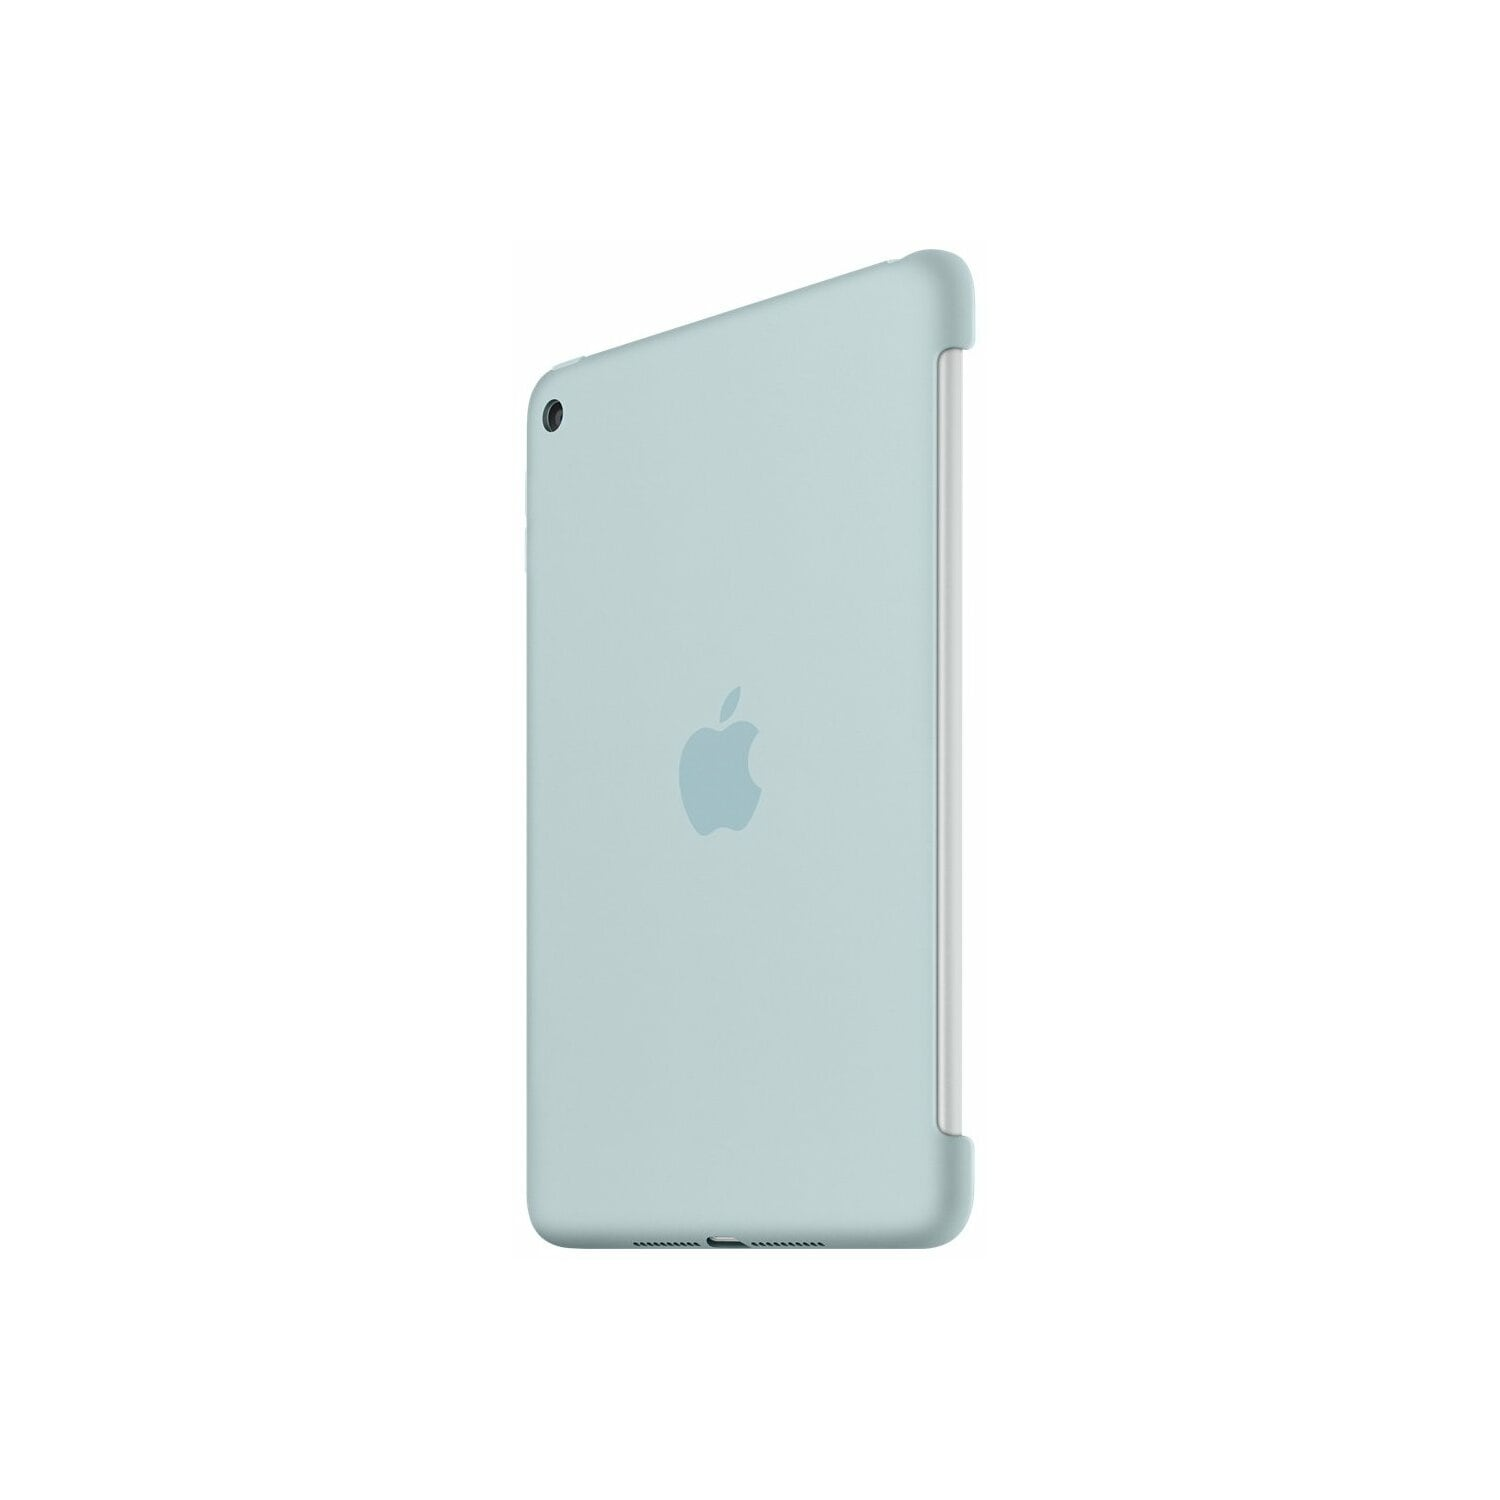 Etui silikonowe APPLE do iPad mini 4 Turkusowy